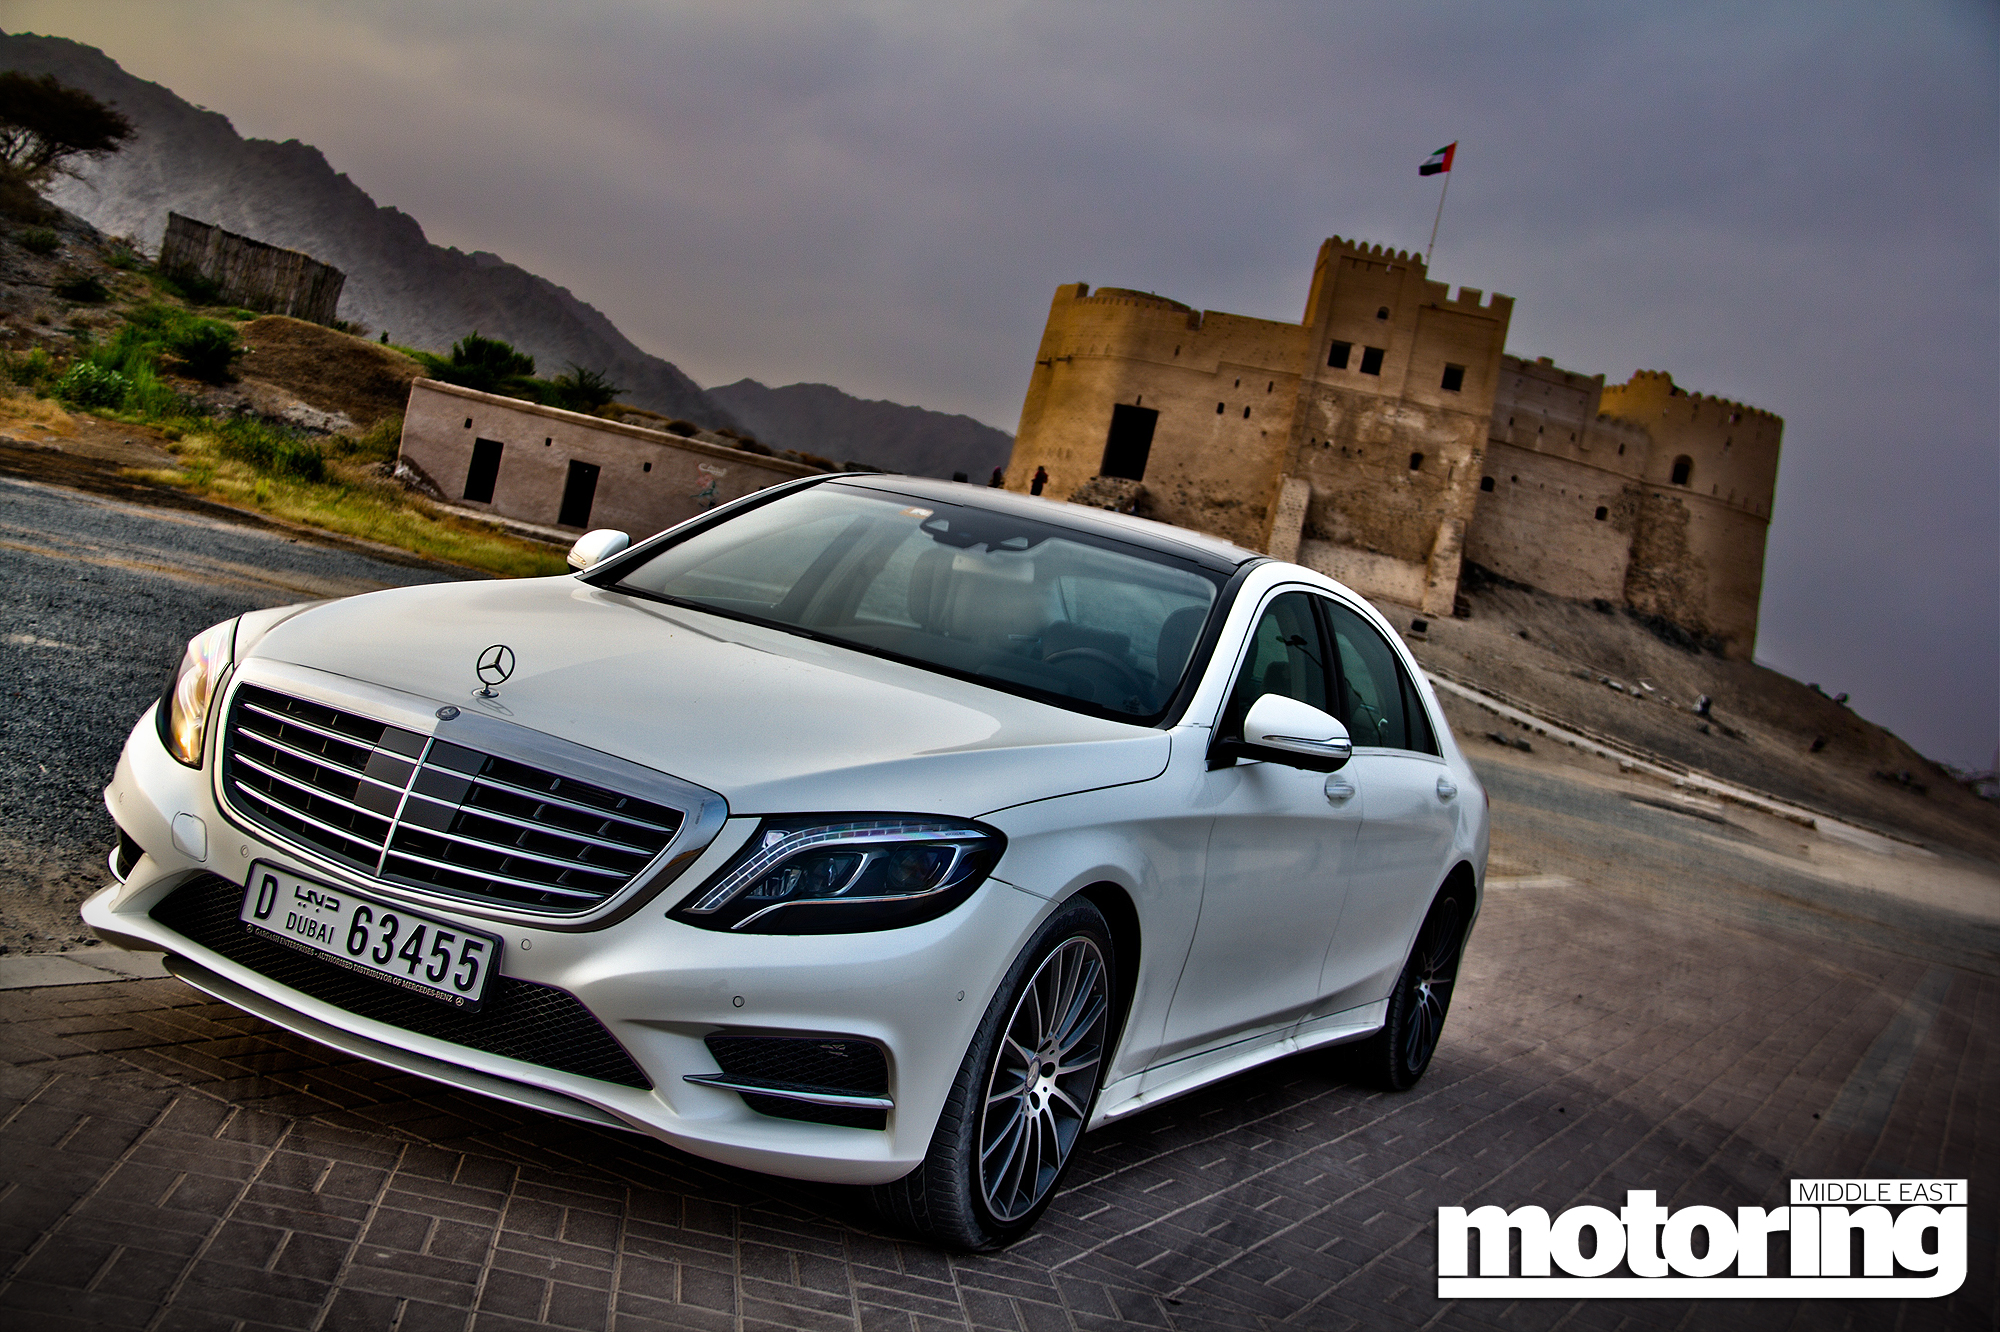 2014 mercedes s400 review for middle eastmotoring middle east car news reviews and buying guides. Black Bedroom Furniture Sets. Home Design Ideas